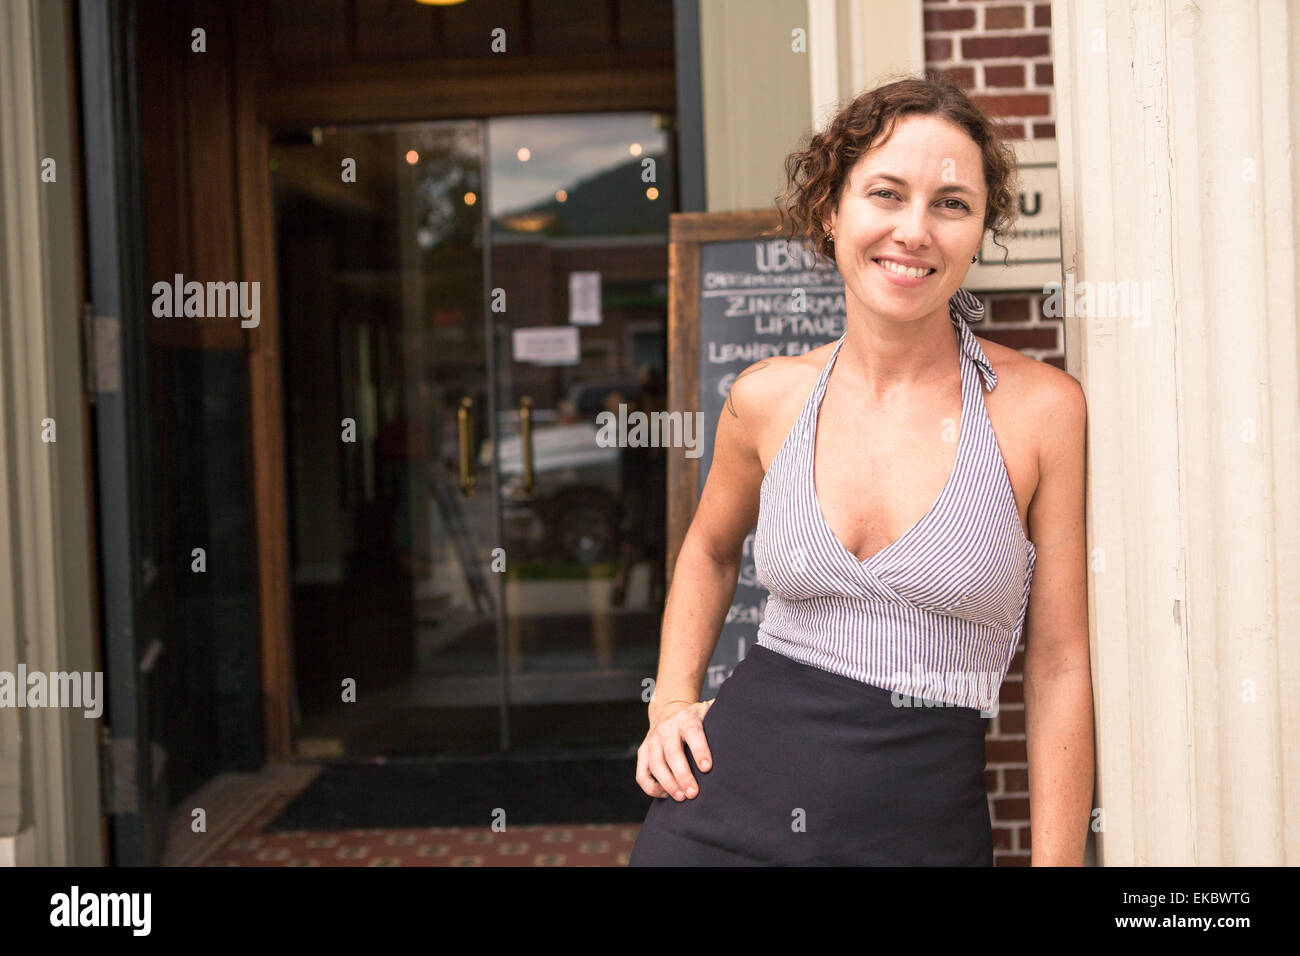 Portrait de femme shop keeper en porte de petit magasin Photo Stock